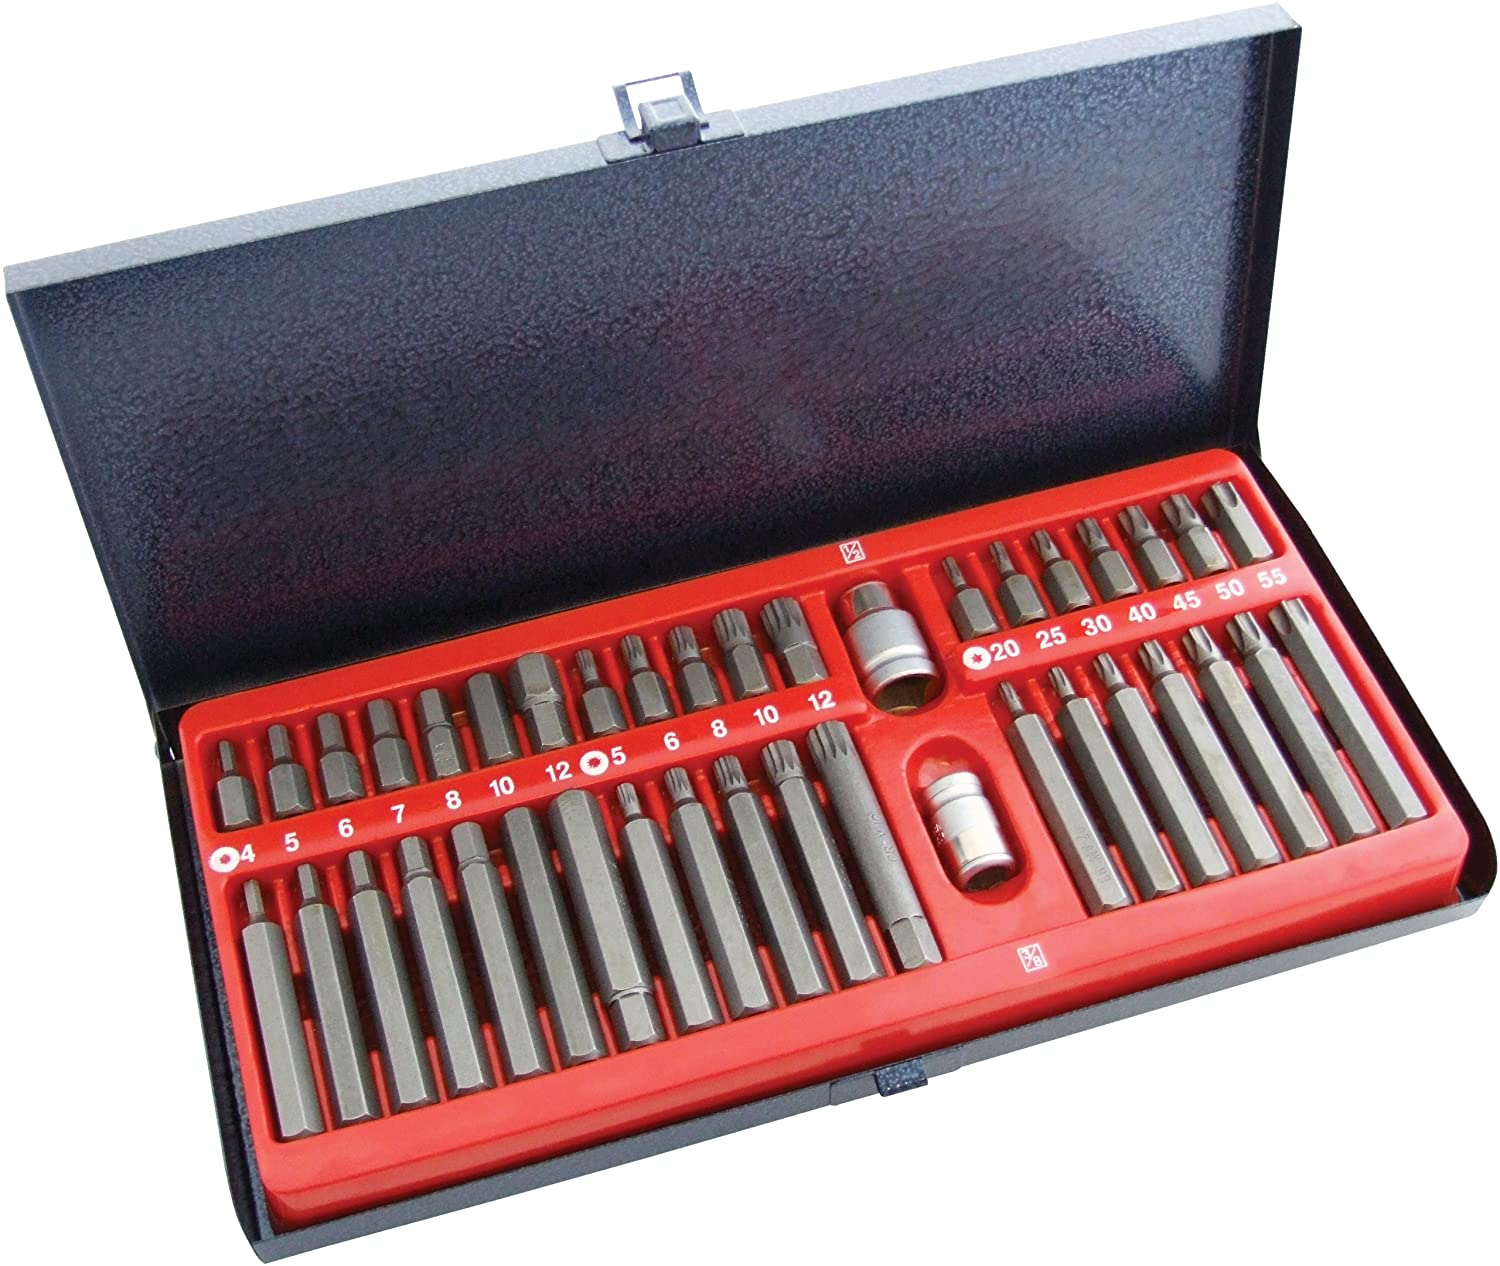 Amtech I8320 Power Bit Set in Metal Tin, 40-Piece AM-I8320